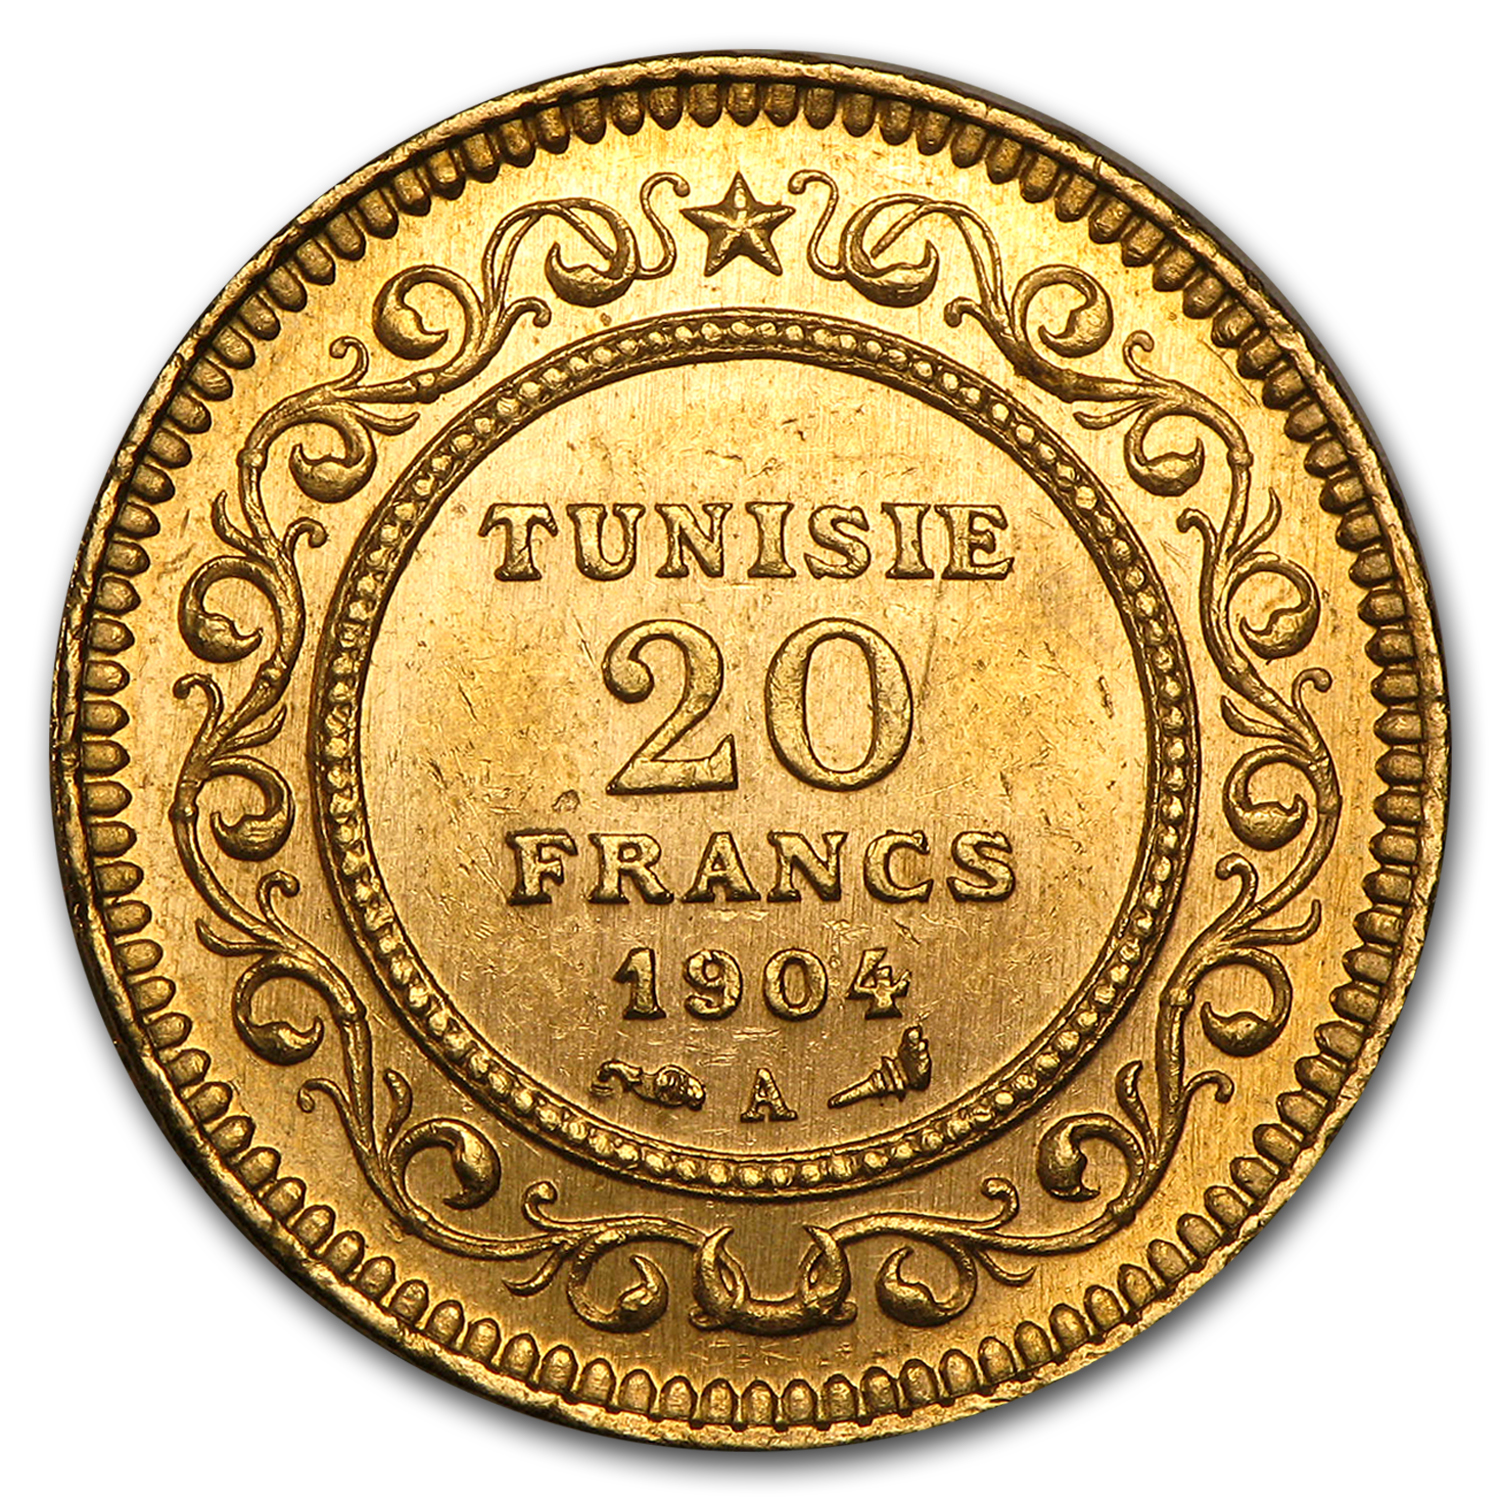 Tunisia Gold 20 Francs Paris Mint XF or Better (Random)